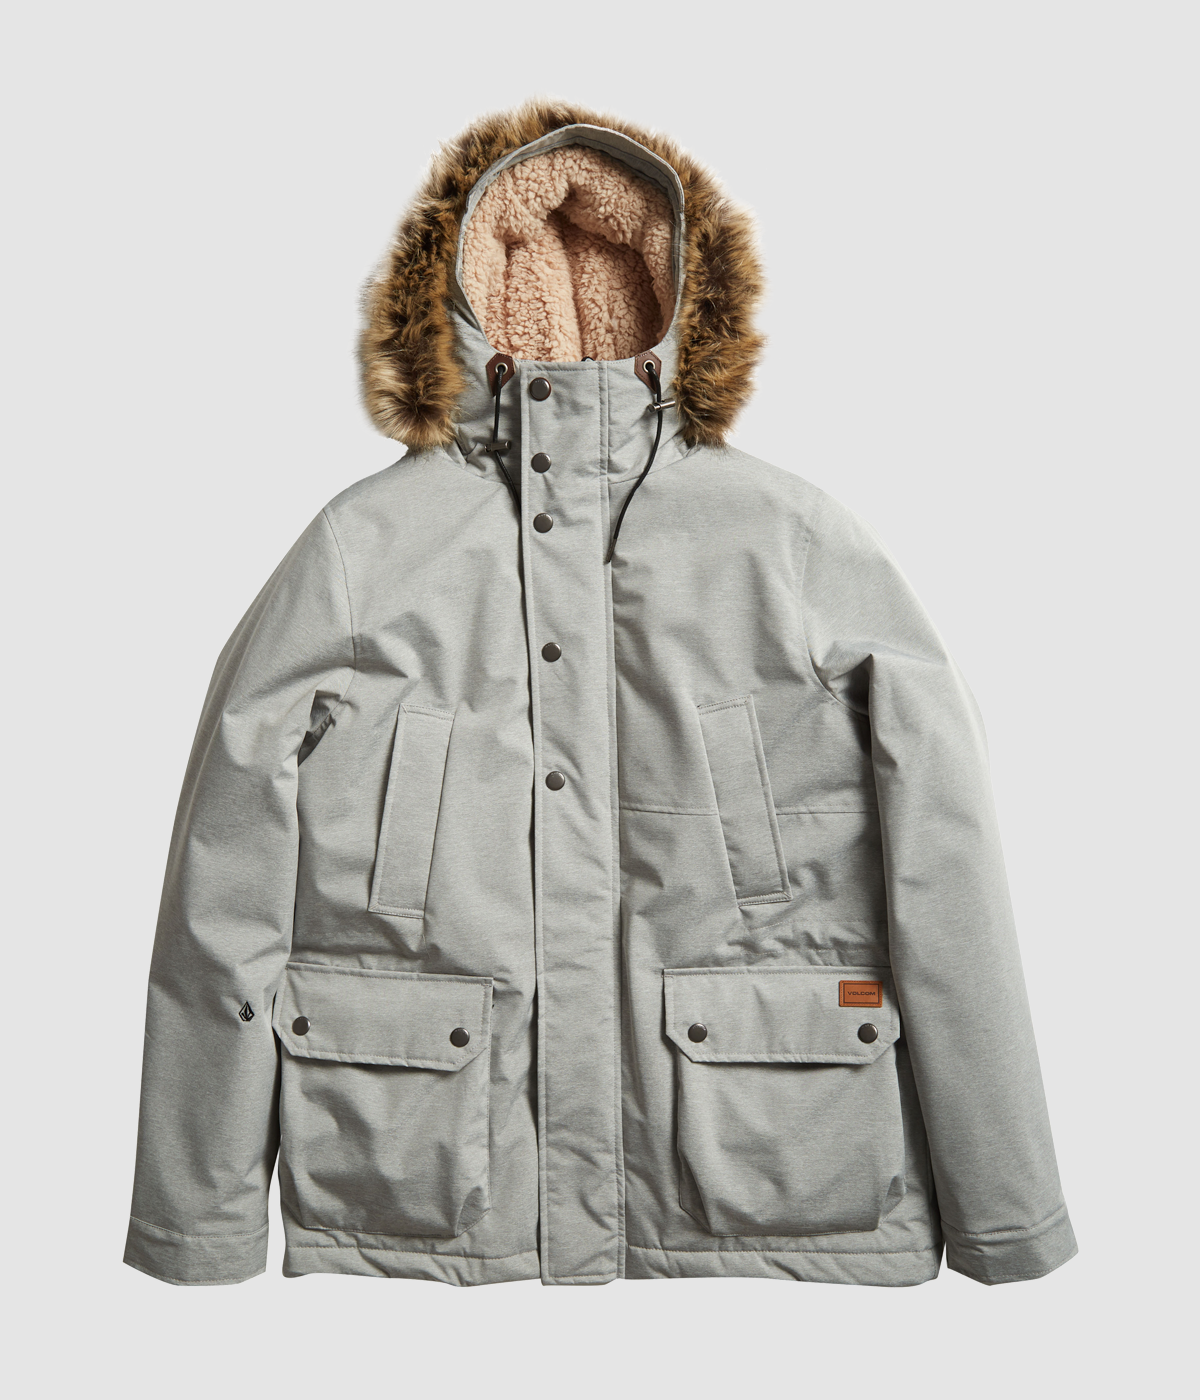 Volcom Lidward Parka Jacket in the Surfers' Christmas Gift Guide